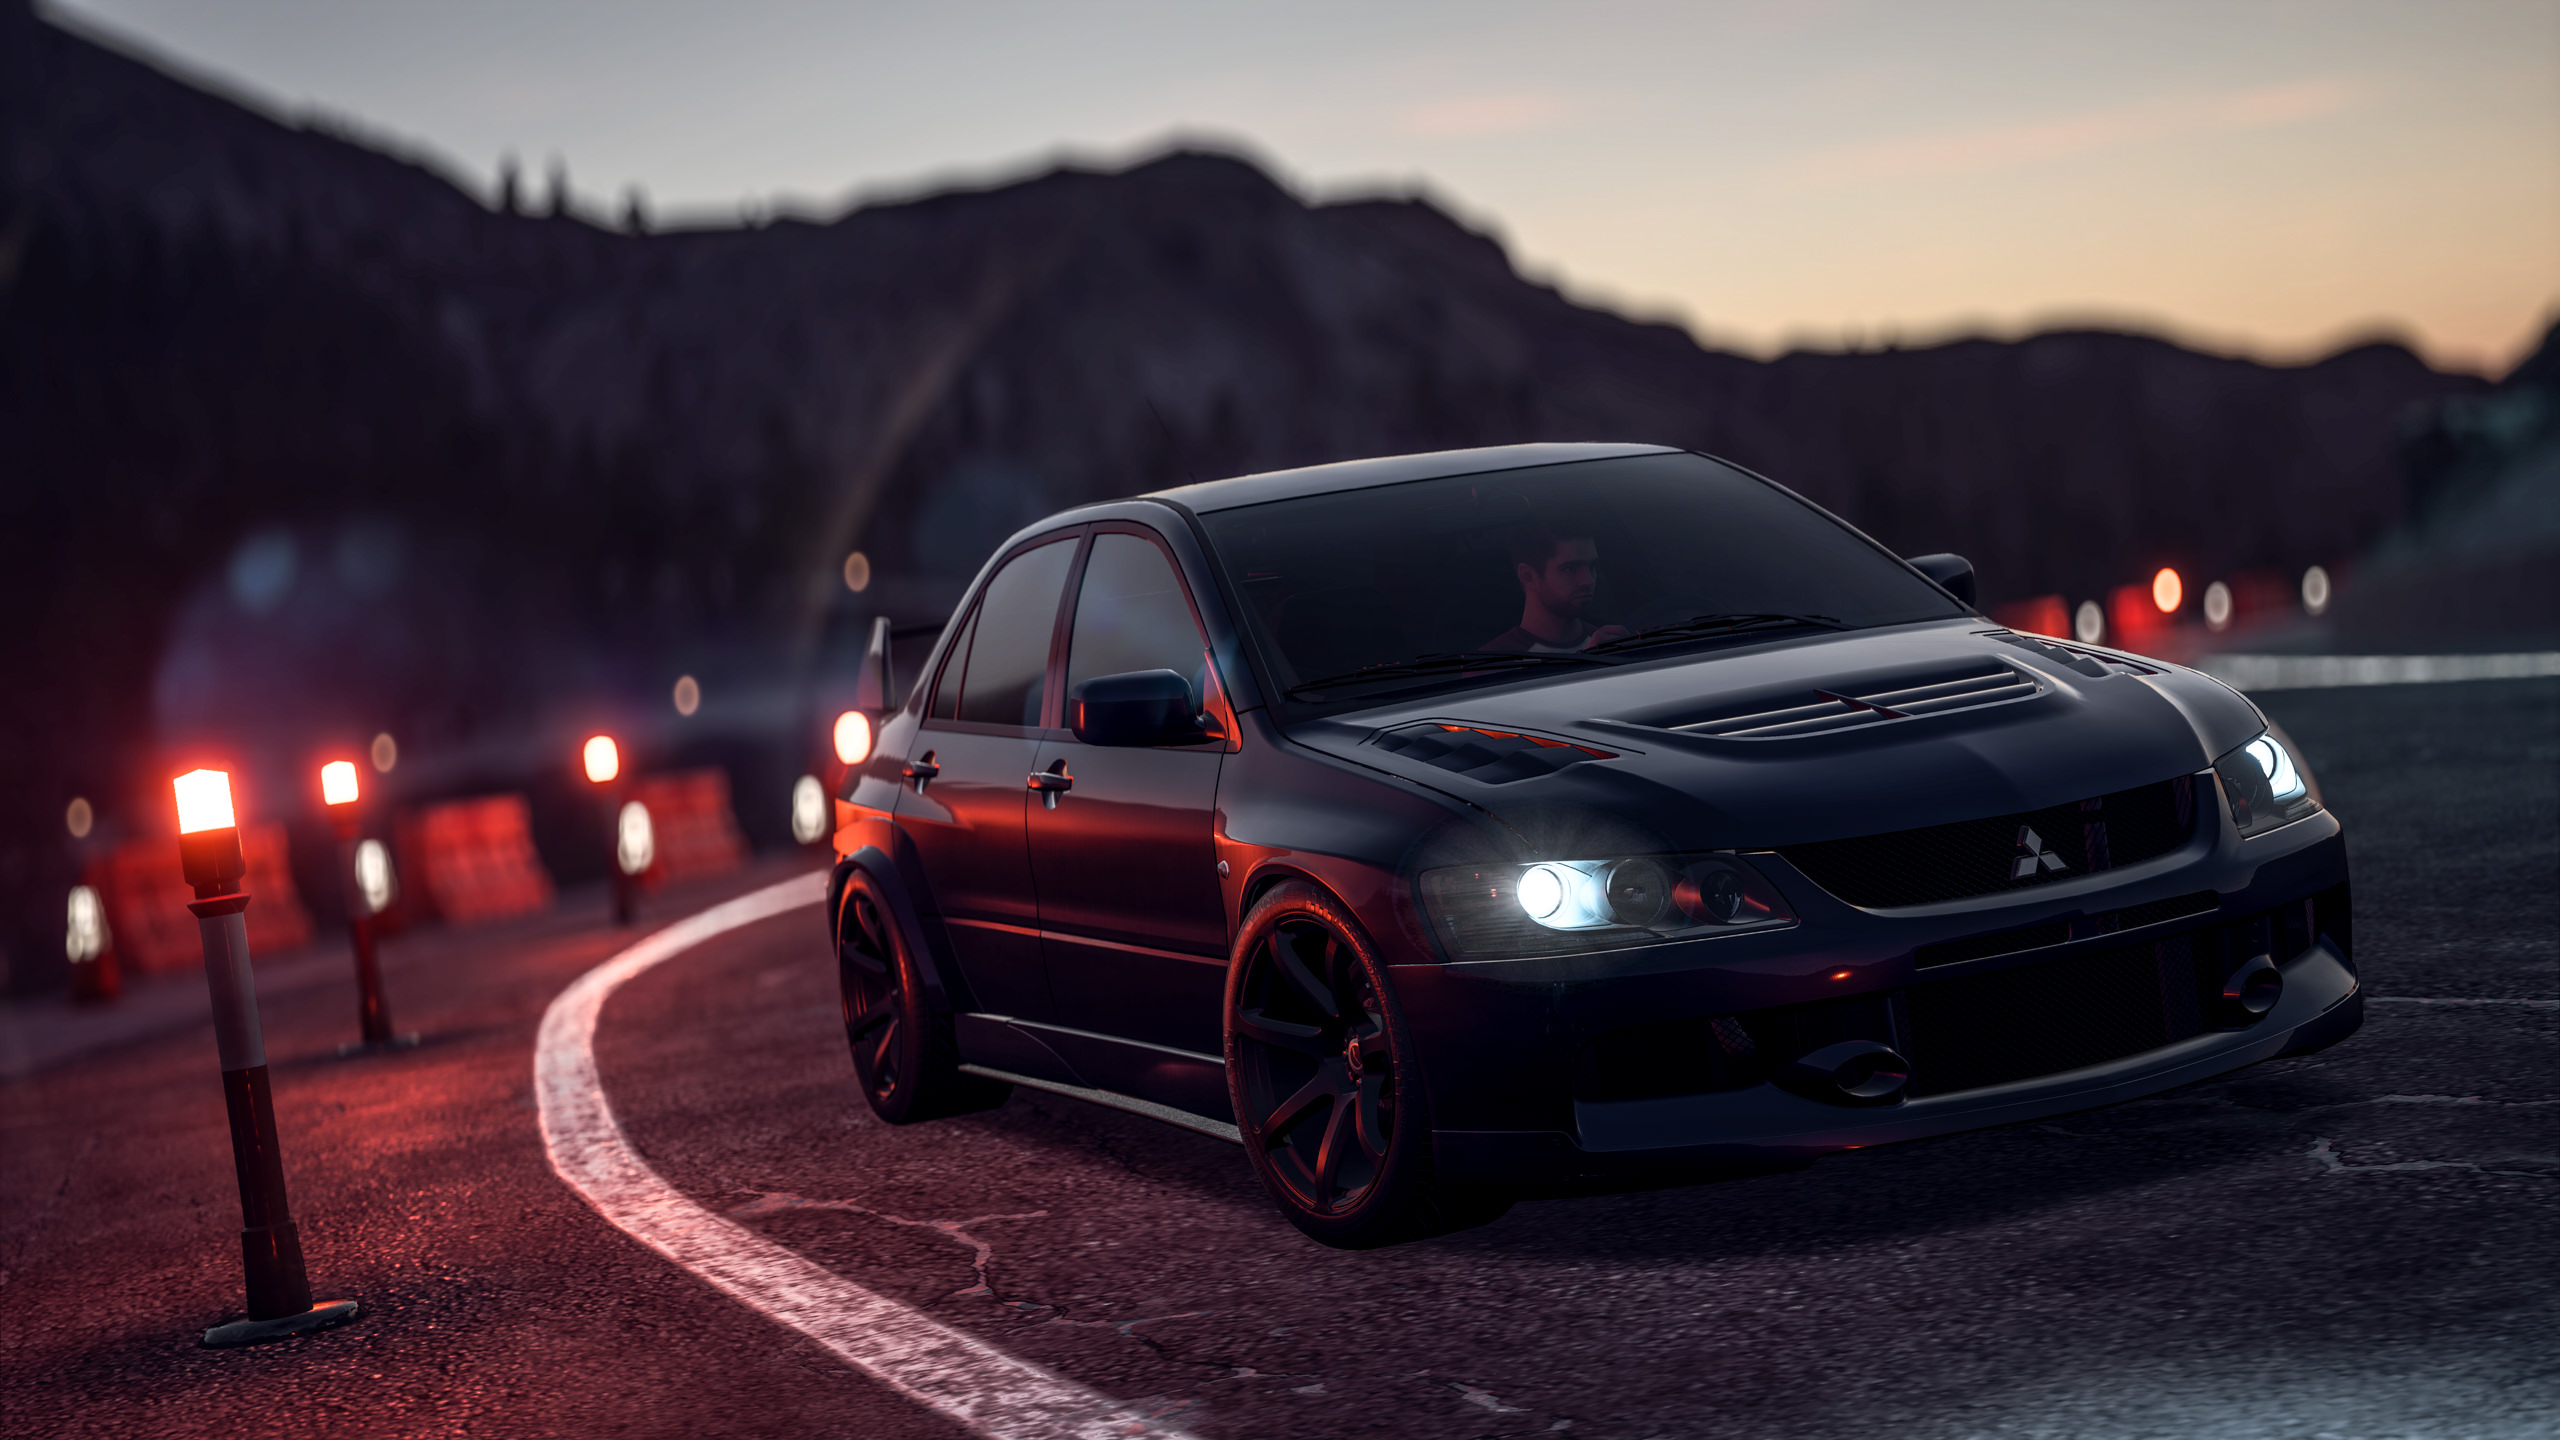 Need For Speed Payback Under The Hood Hd Games 4k Wallpapers